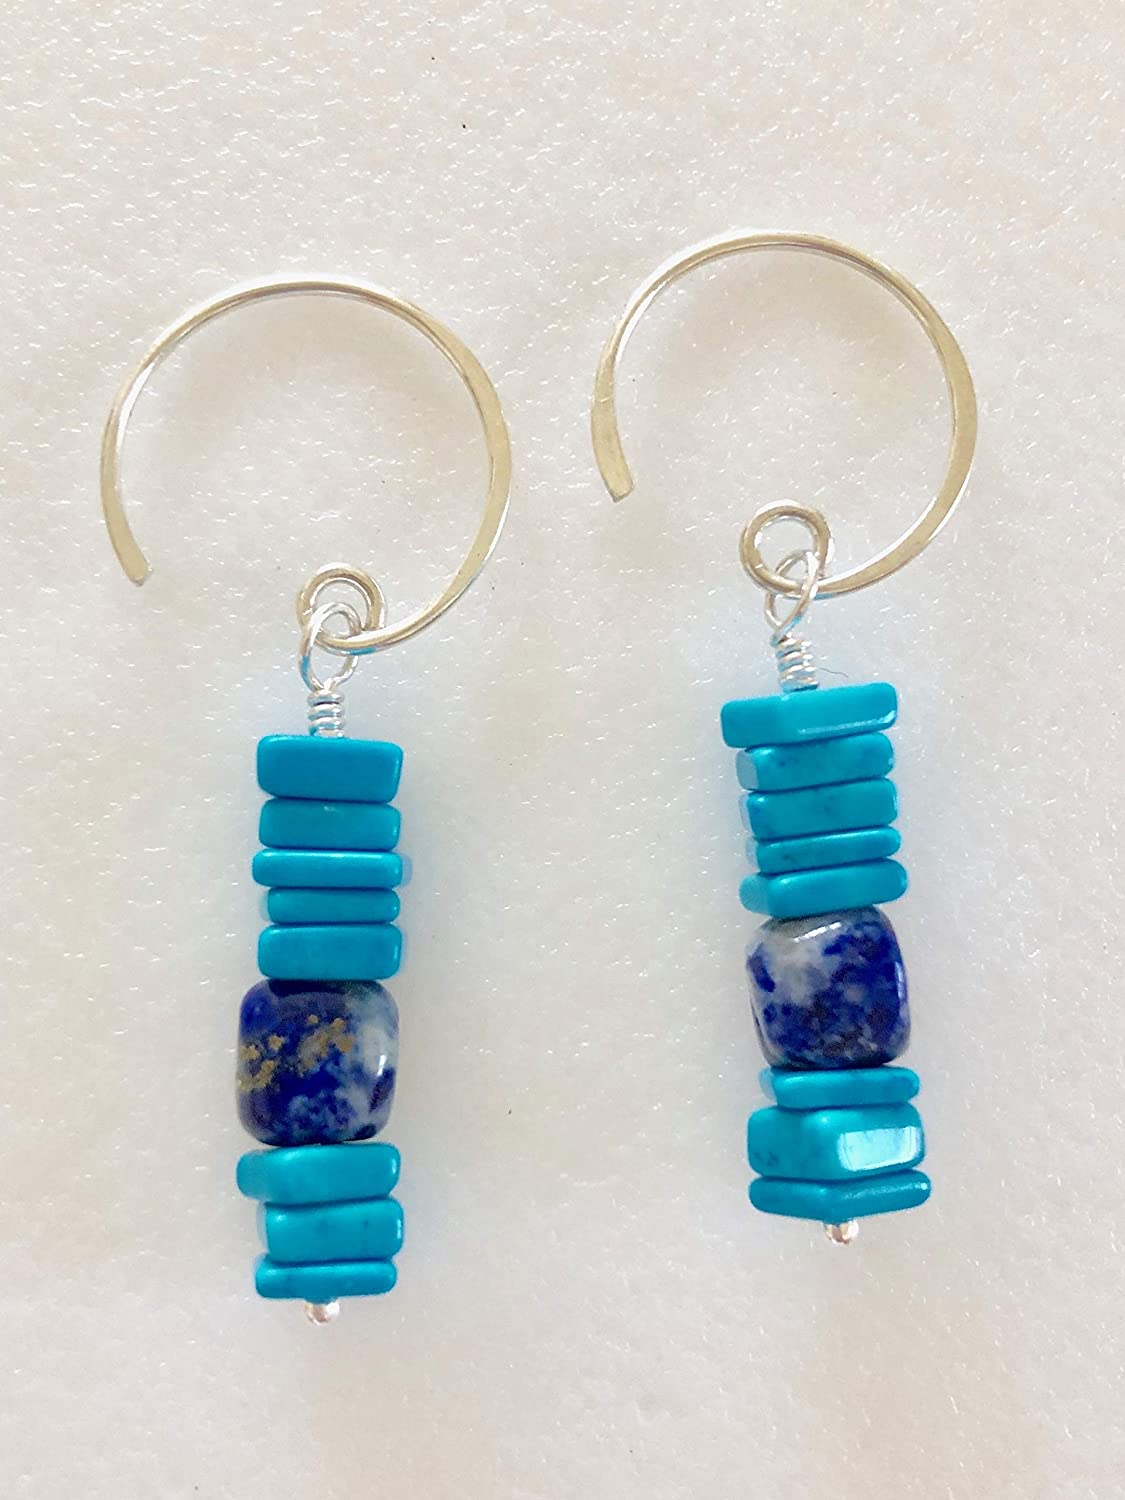 Turquoise and Lapis Natural Healing Gemstone Earrings with Sterling Silver Wires